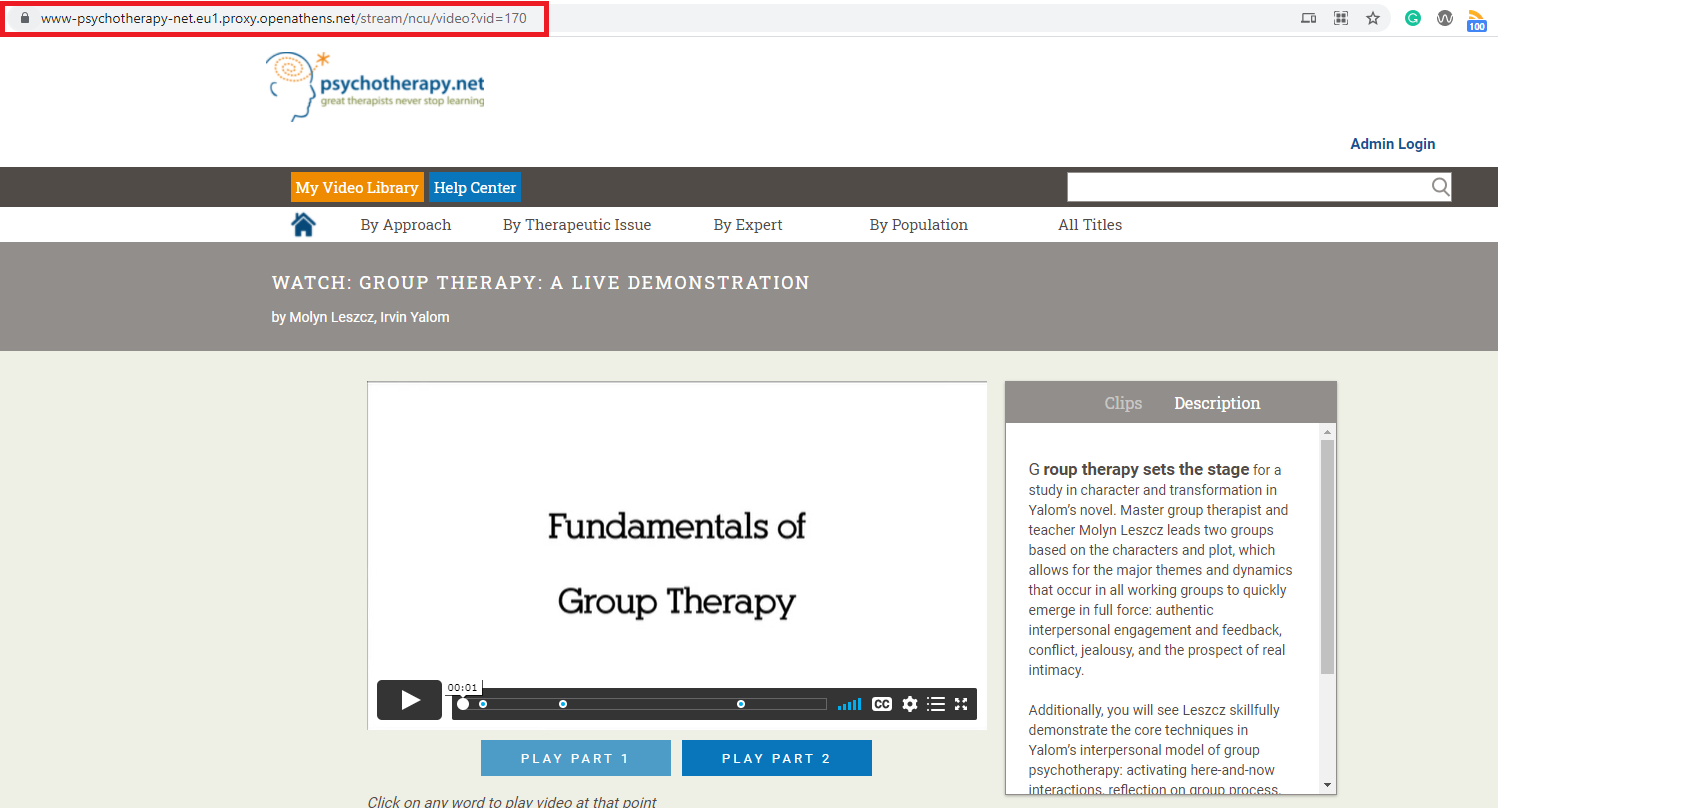 Psychotherapy.net resource landing page with URL in address bar highlighted